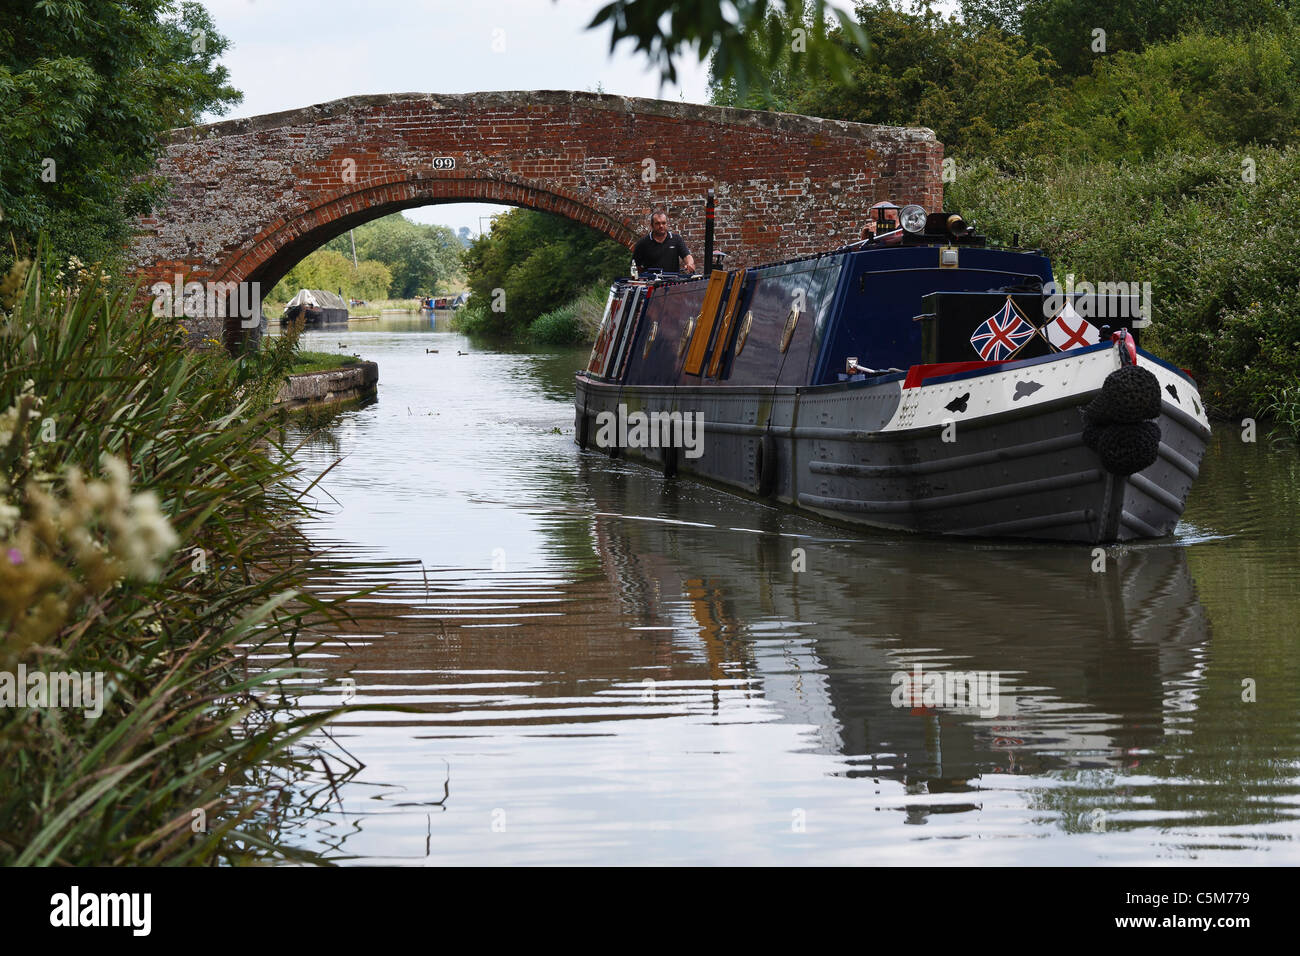 Cruising on the Oxford Canal/Grand Union Canal at Hargreaves Bridge near Braunston, Northamptonshire - Stock Image